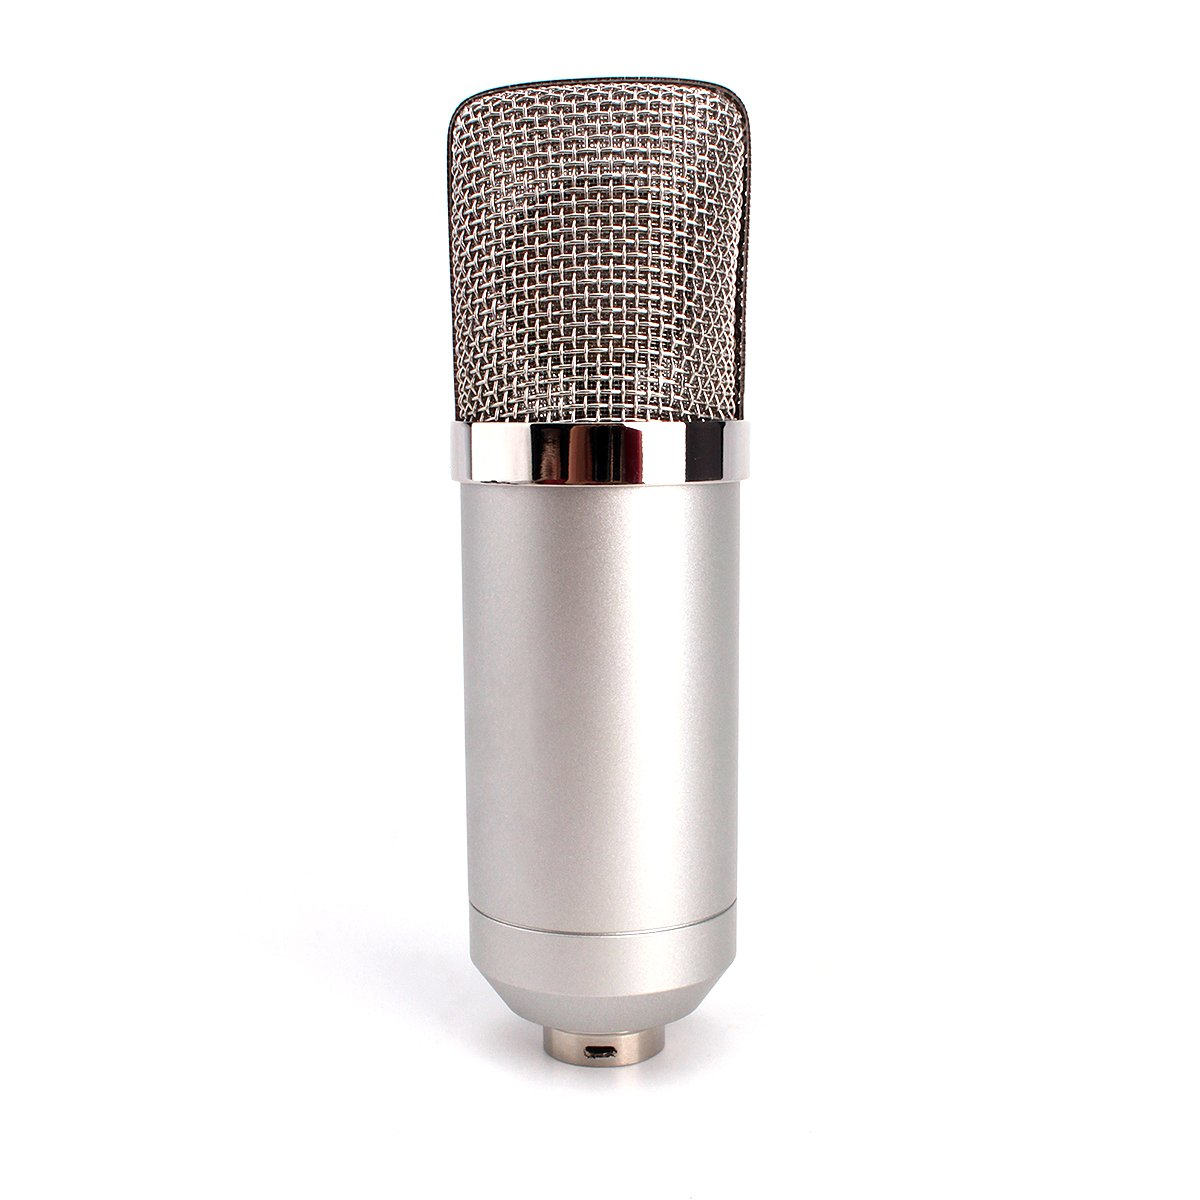 ZRAMO Large Diagram Condenser Mics Recording Microphone Studio Professional mic for Computer PC Use, Best Recording Studio Equipment for Recording (black-800)